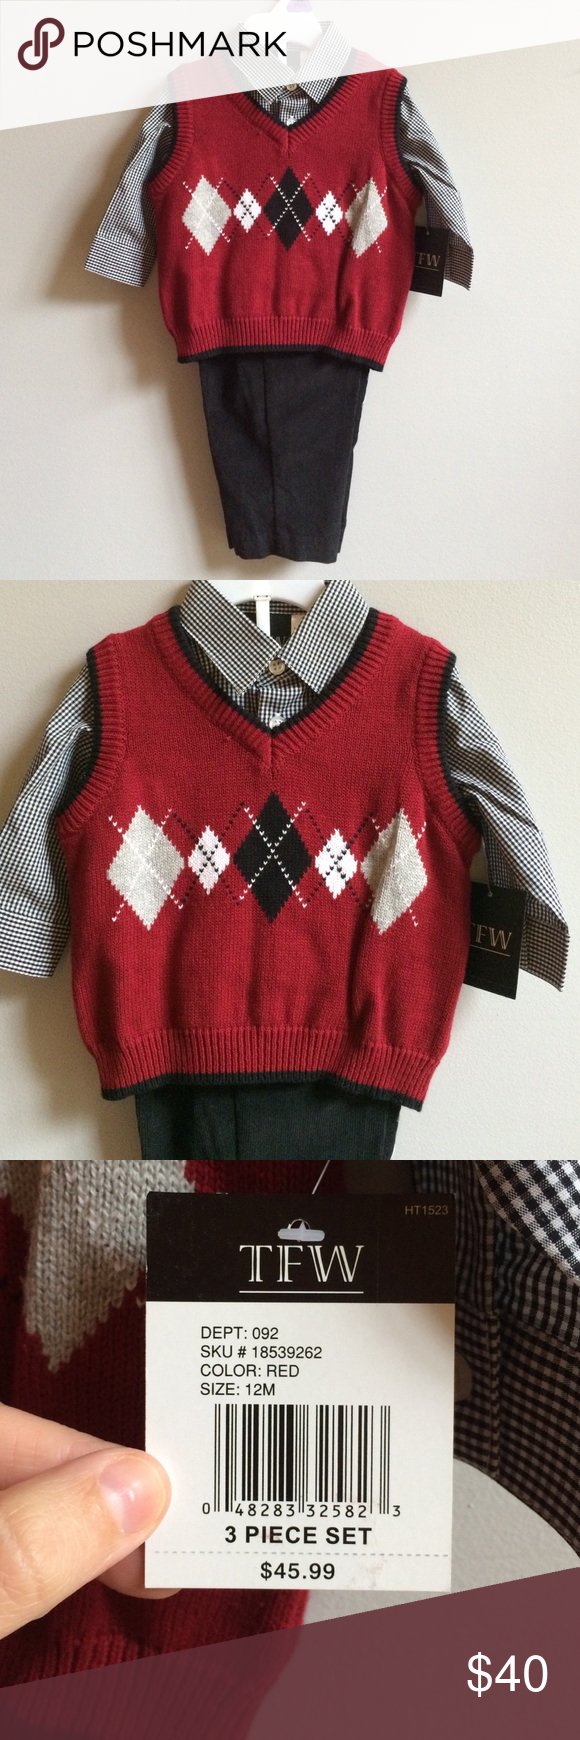 NWT Sweater Vest Corduroy Pants Set Brand new with tags. Retail ...